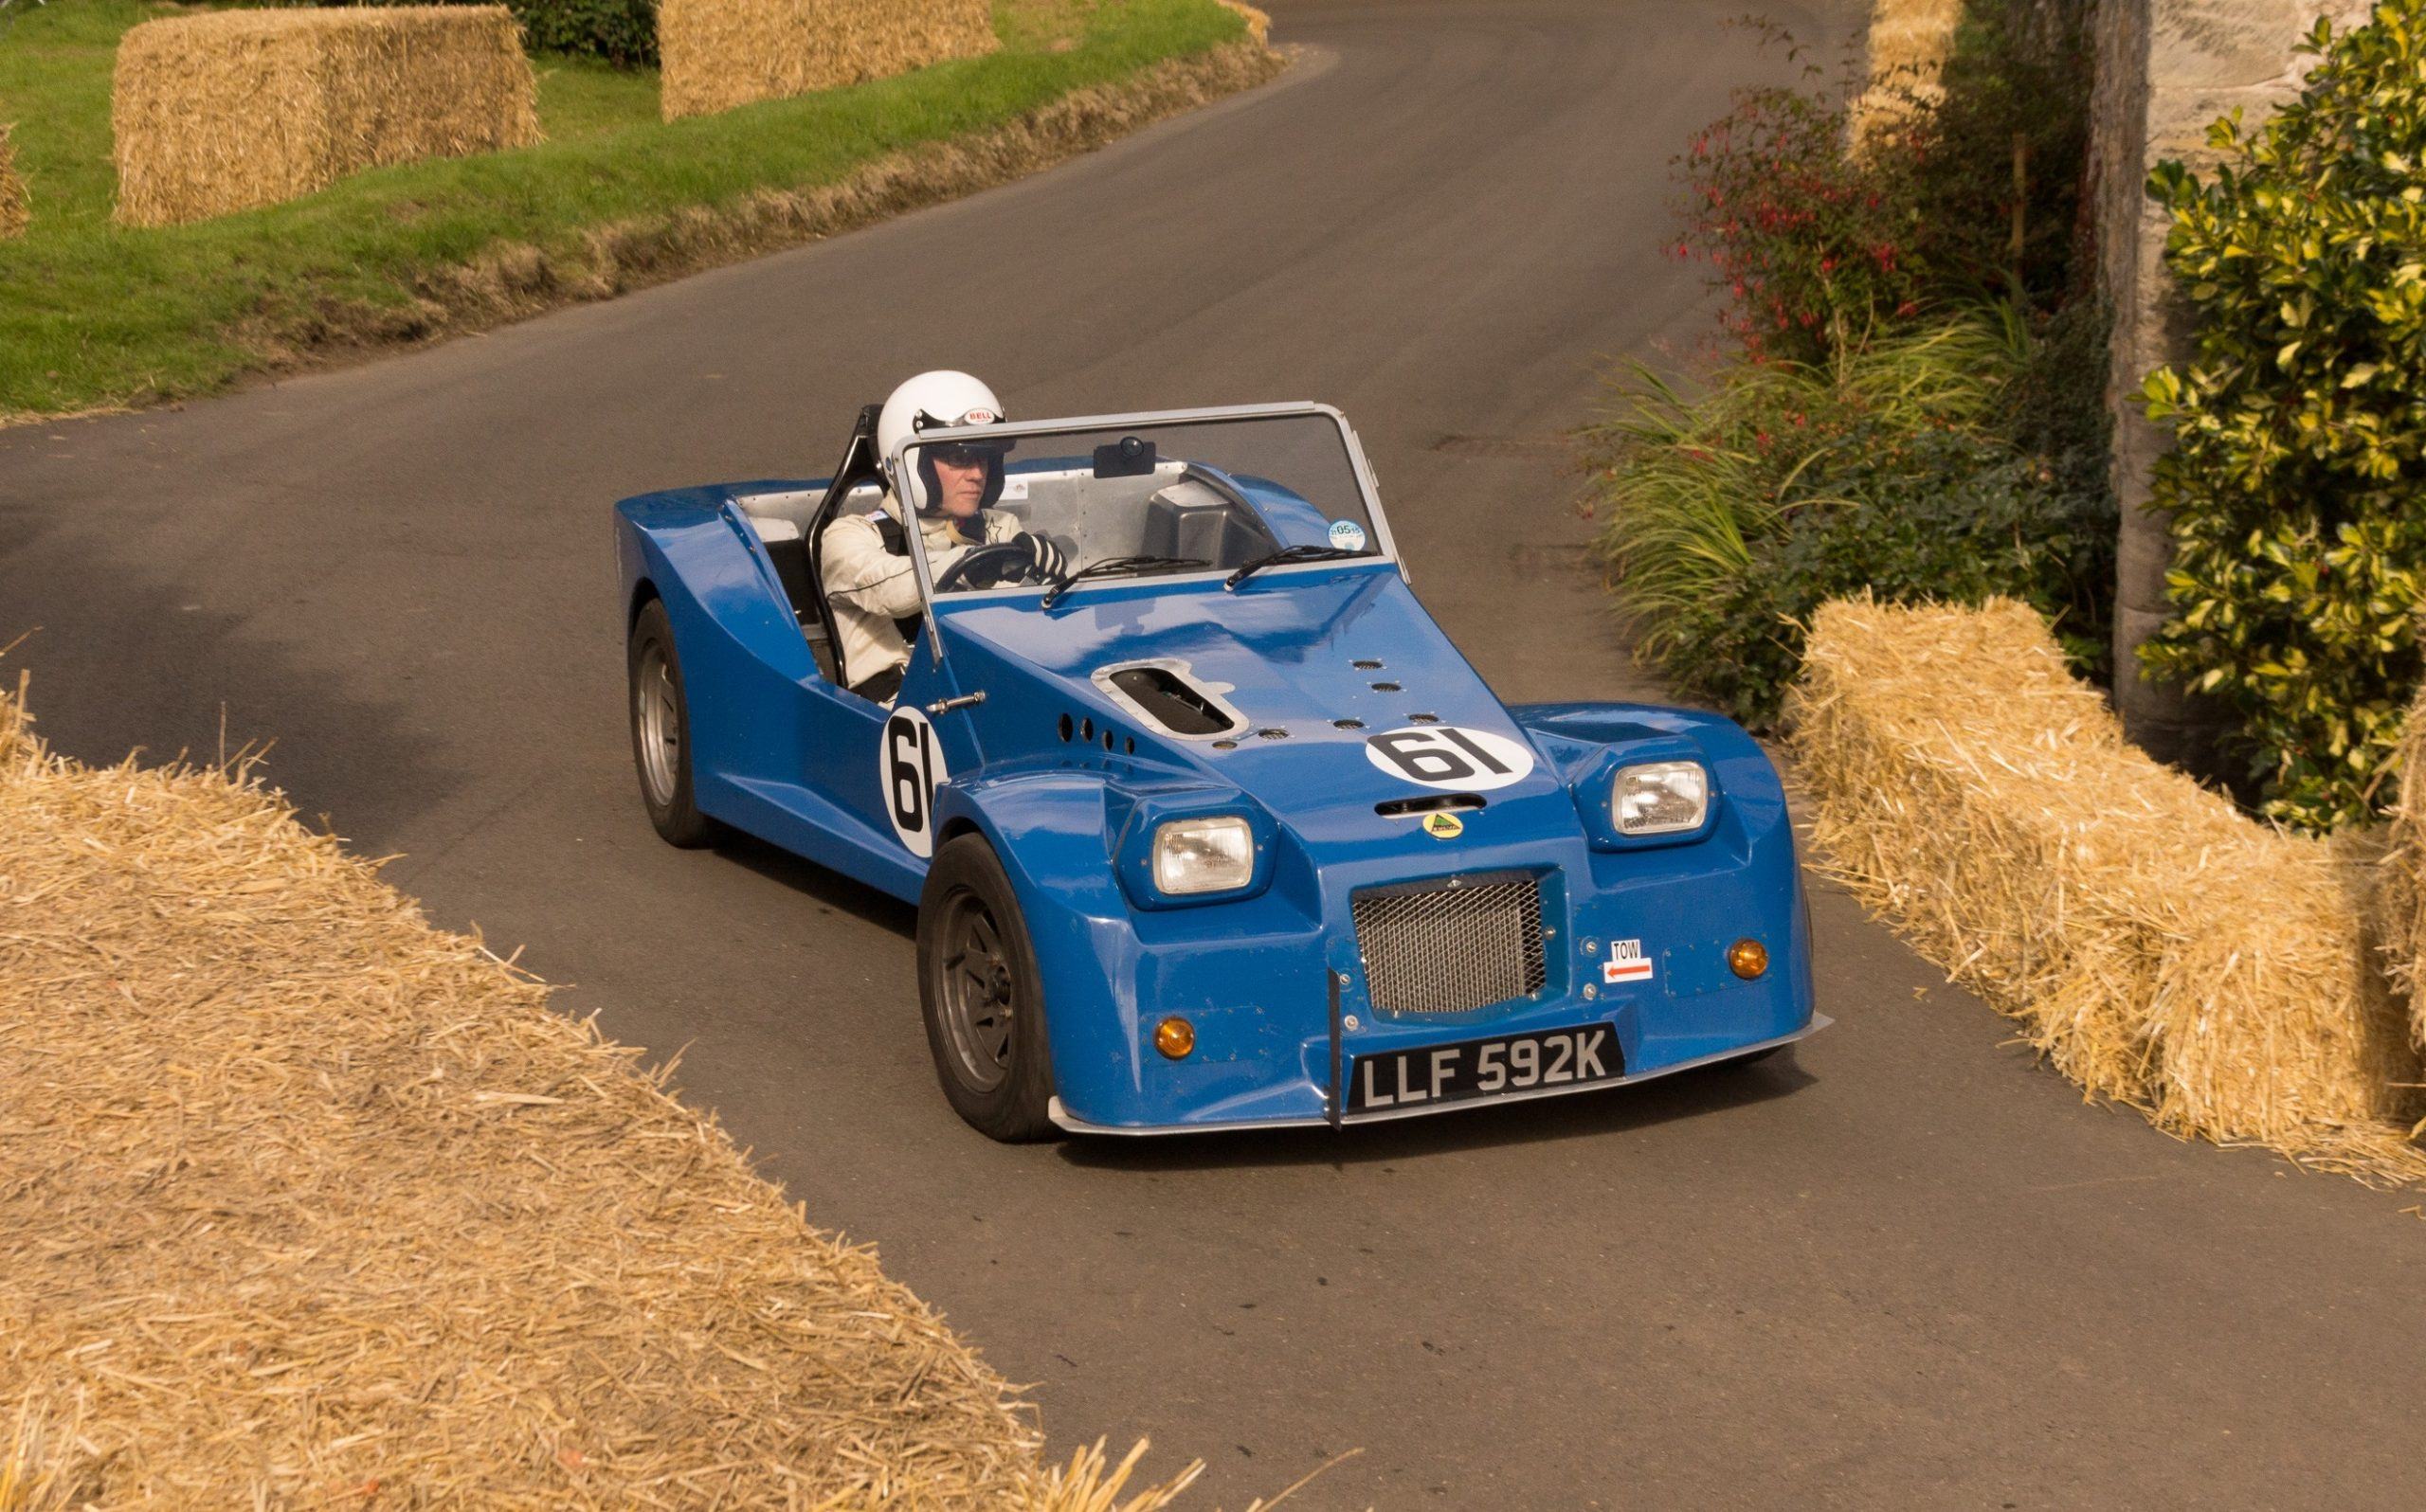 Opinion: To win on and off track you need a classic kit car